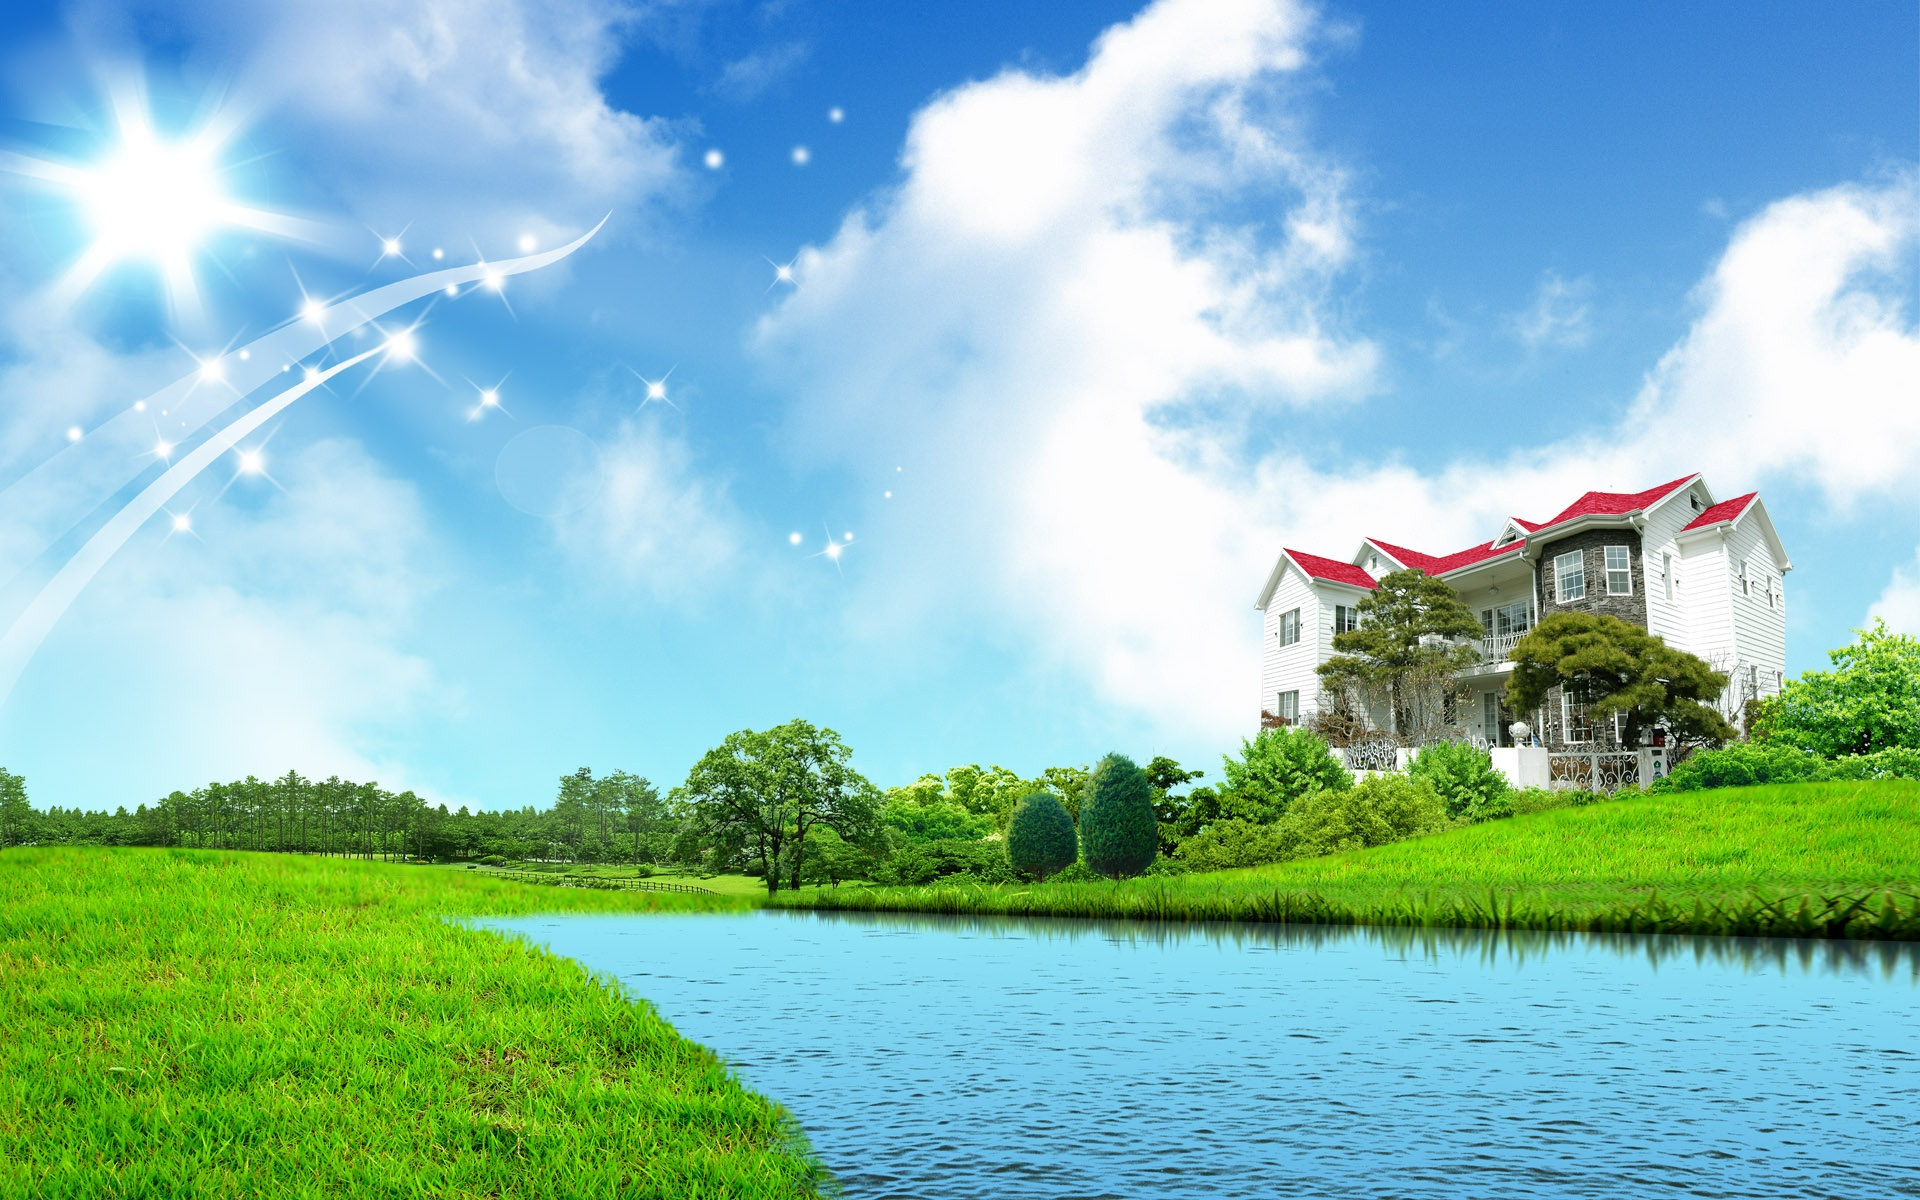 sweet home wallpaper designs. Sweet Home design wallpaper wallpapers for free download about  3 165